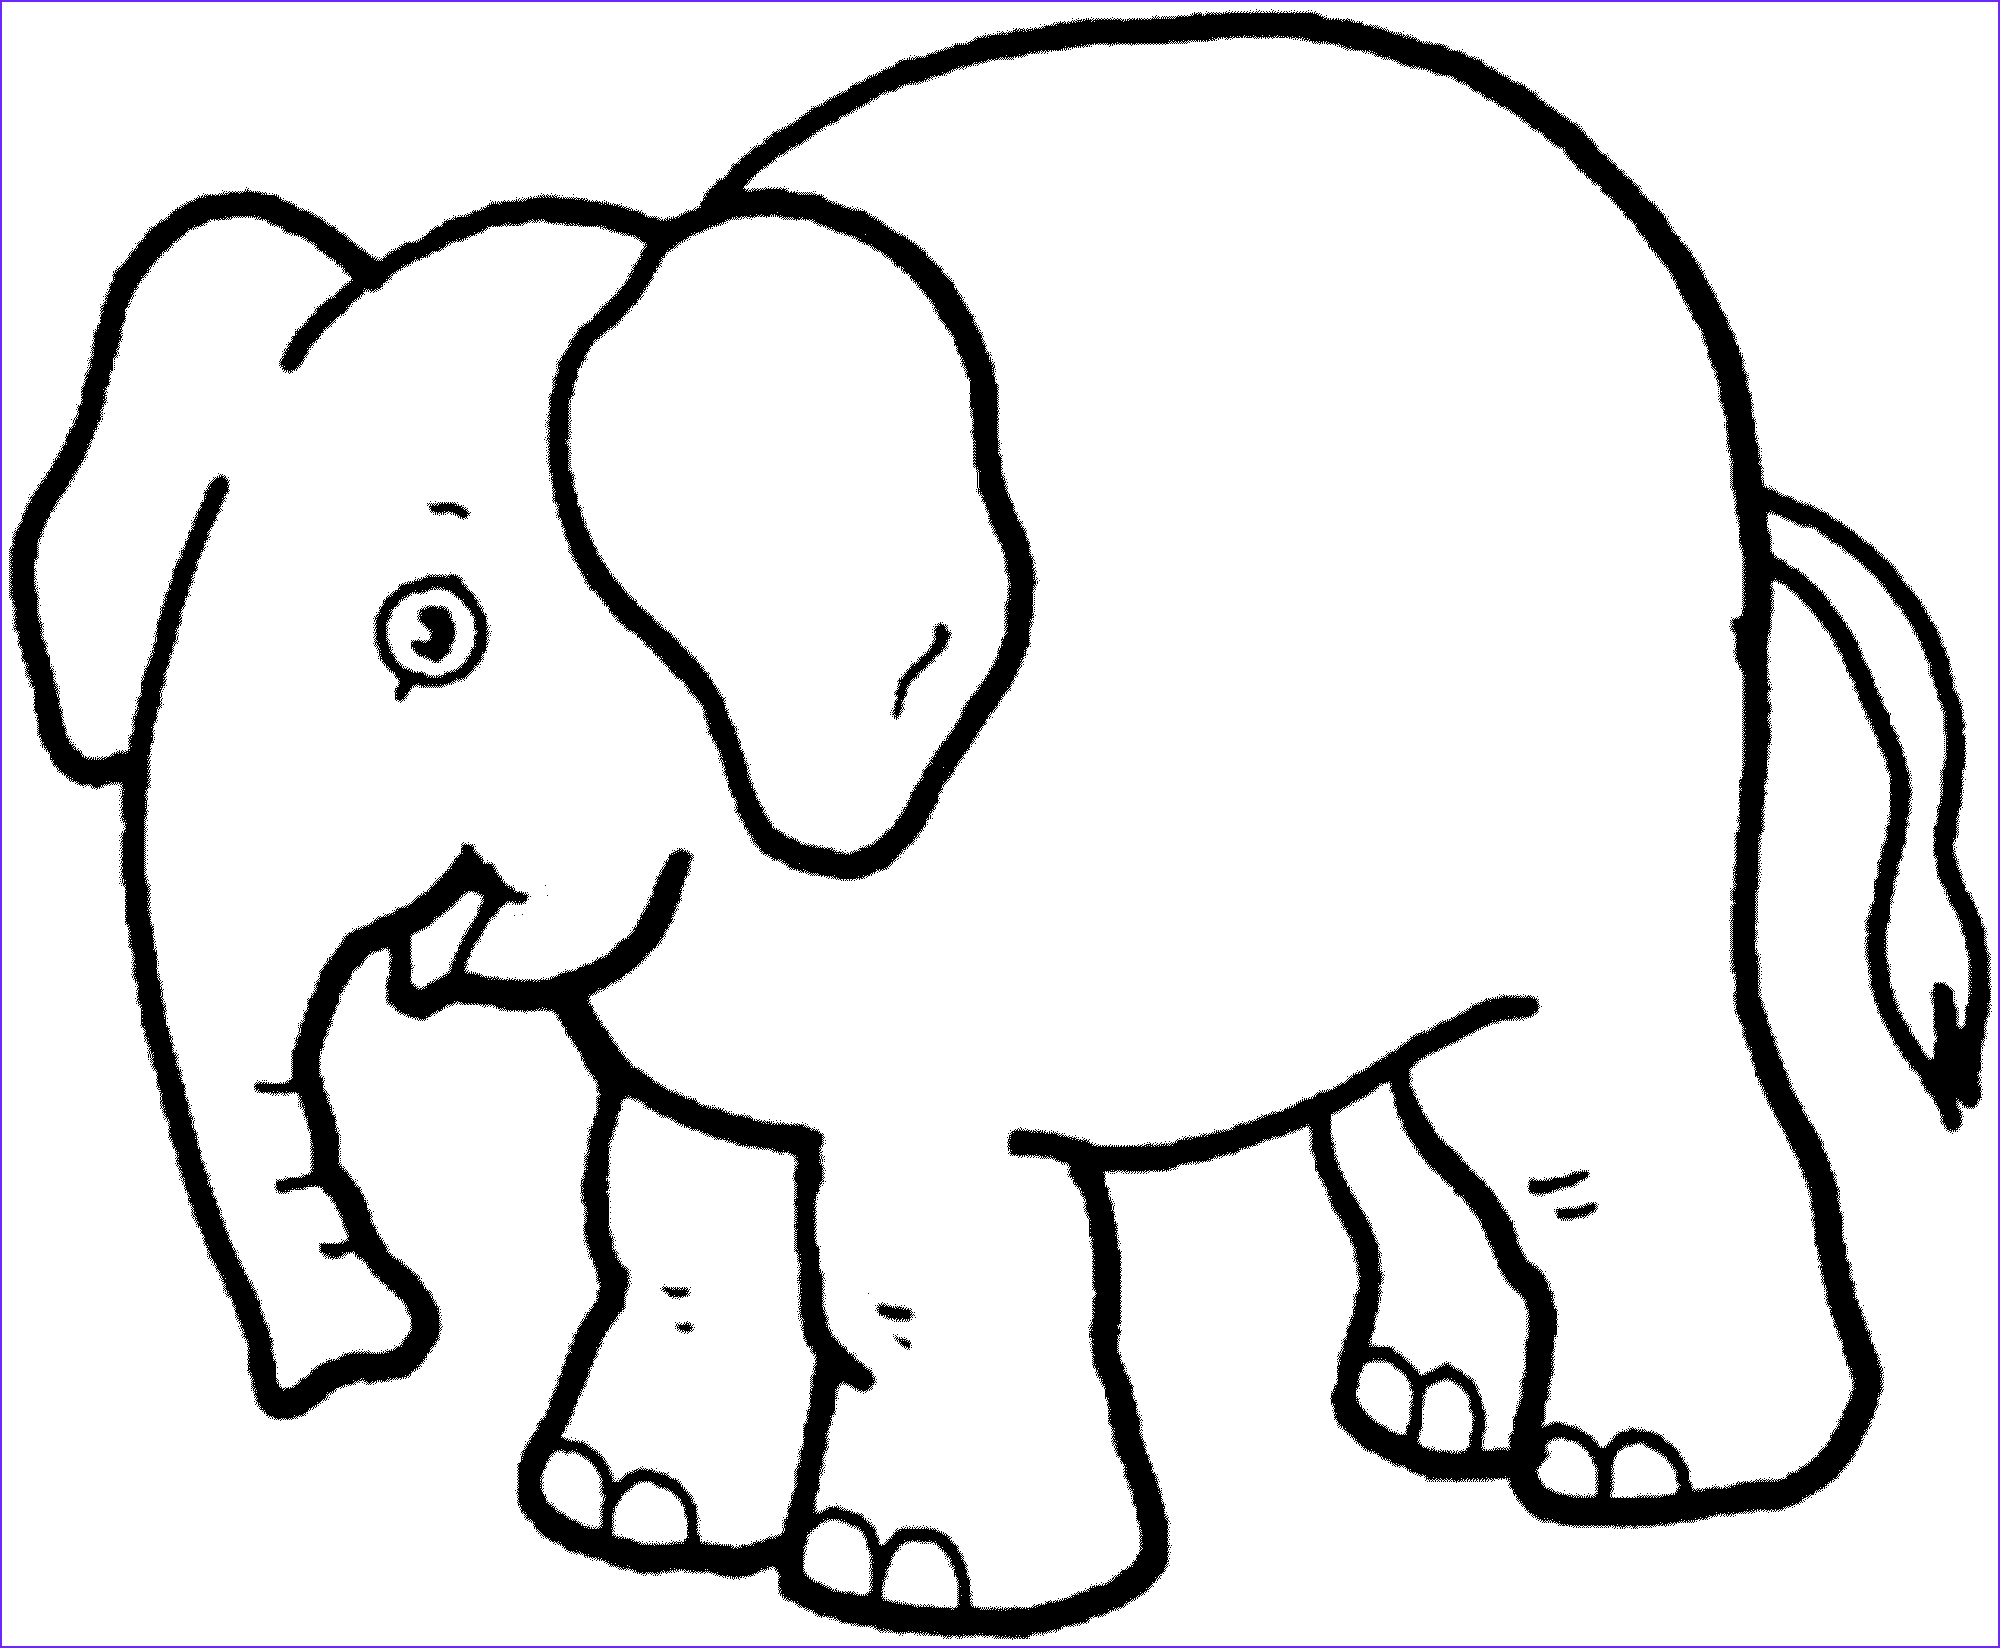 teaching kids elephant coloring pages